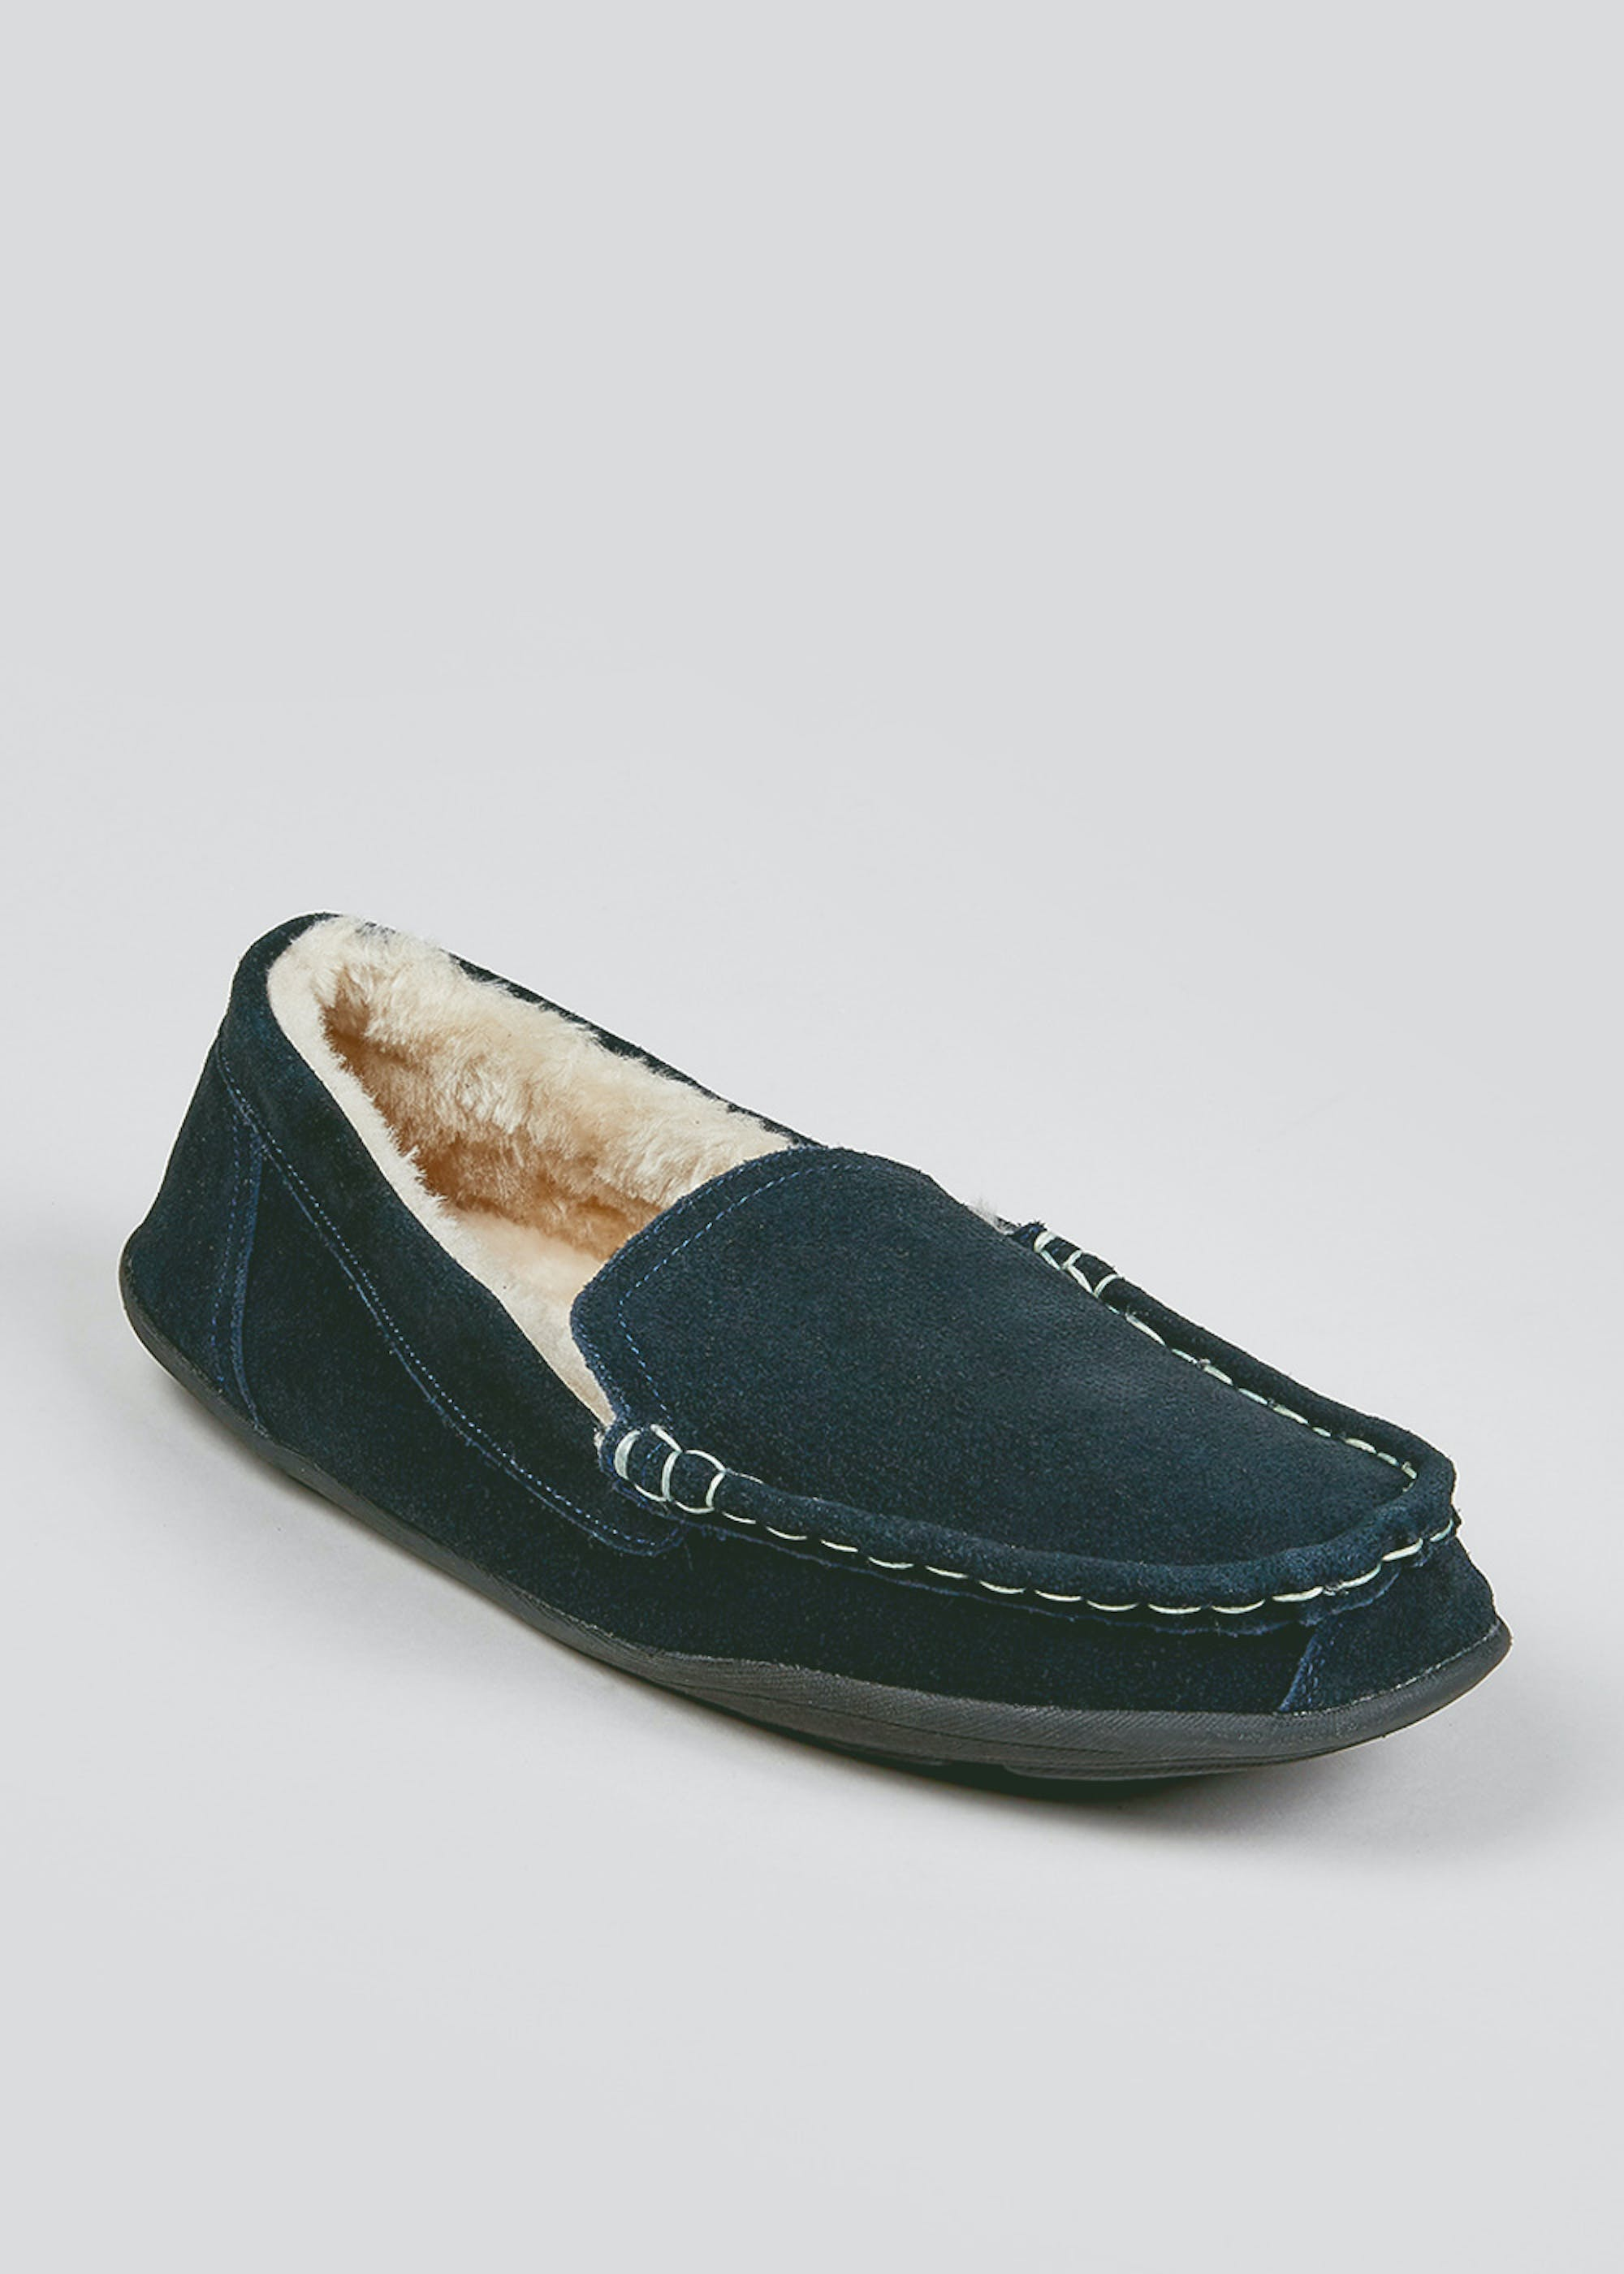 Navy Real Suede Moccasin Slippers Navy JialLi